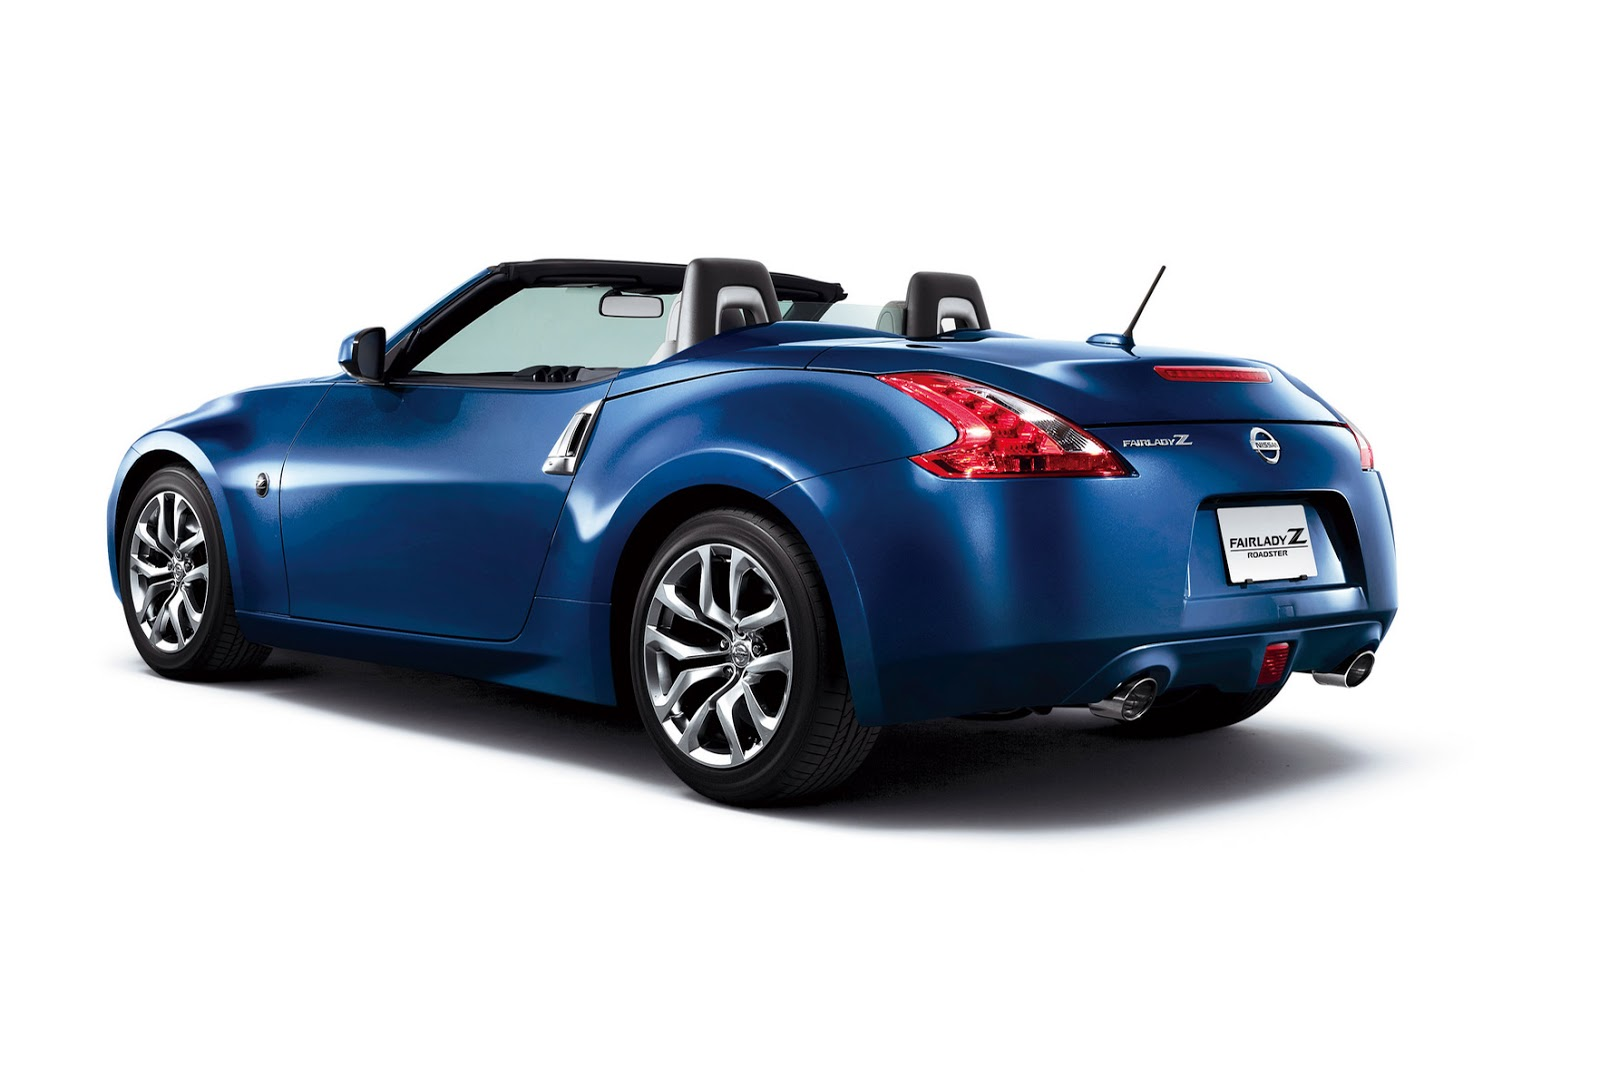 2019 Nissan Fairlady Z Roadster photo - 3